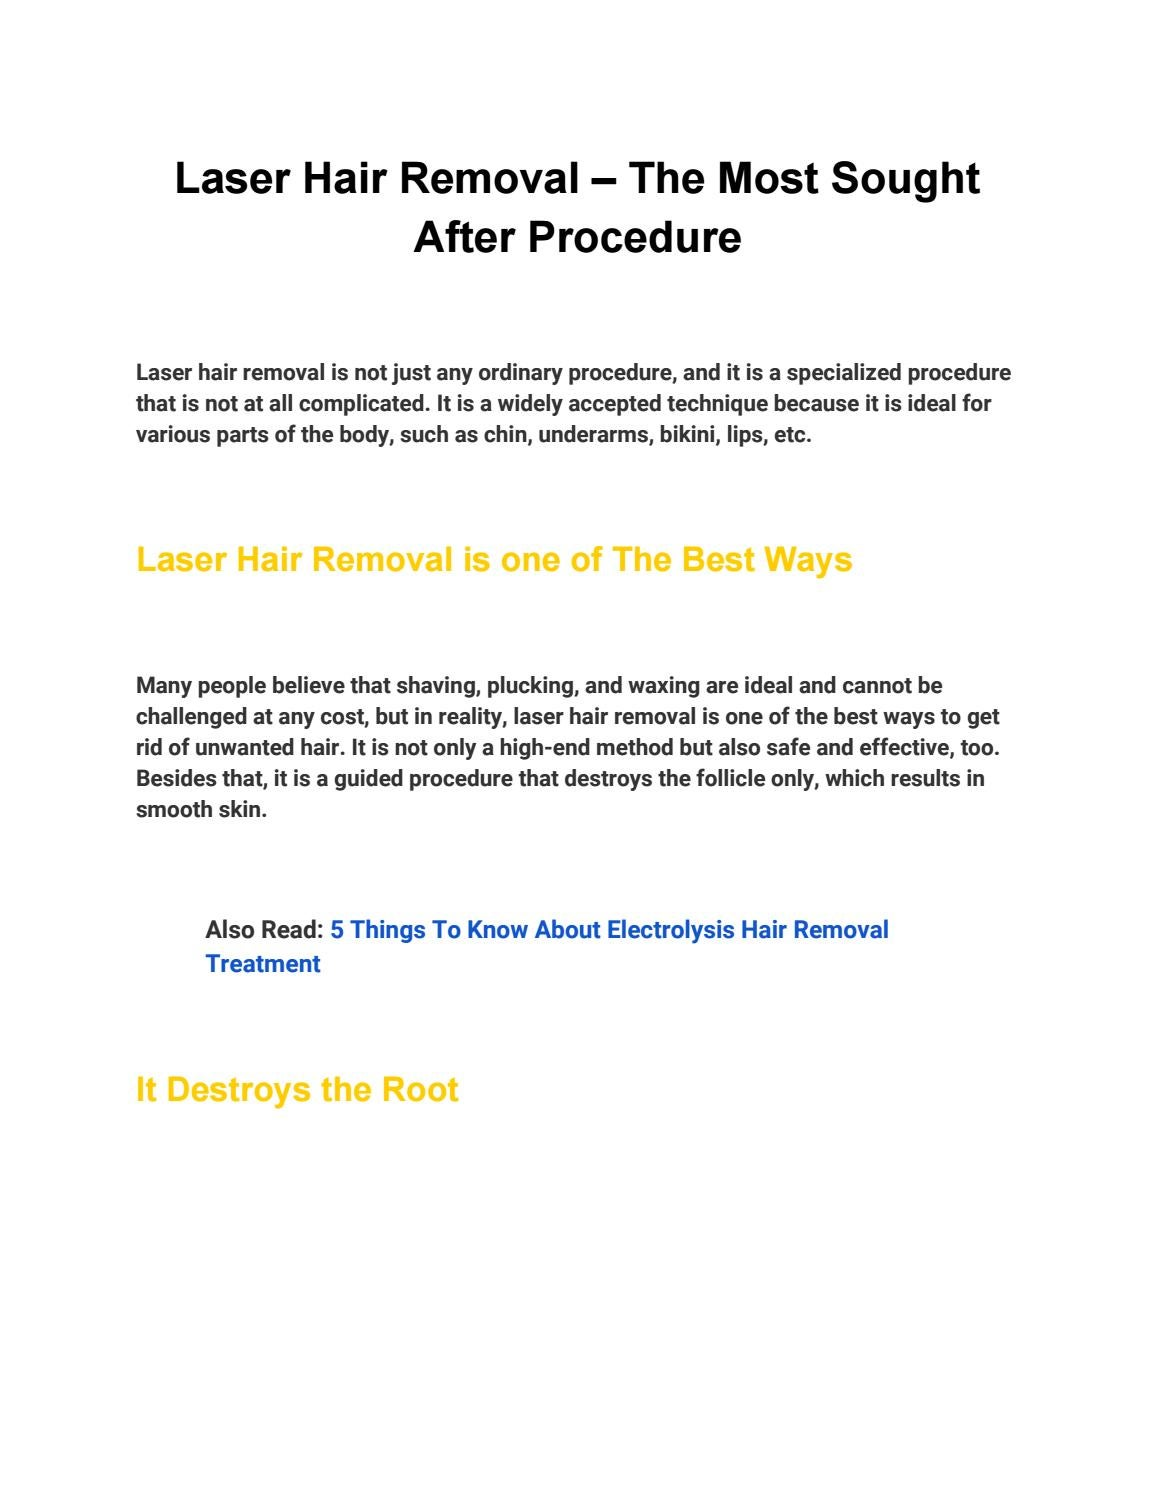 Laser Hair Removal The Most Sought After Procedure By Fashion